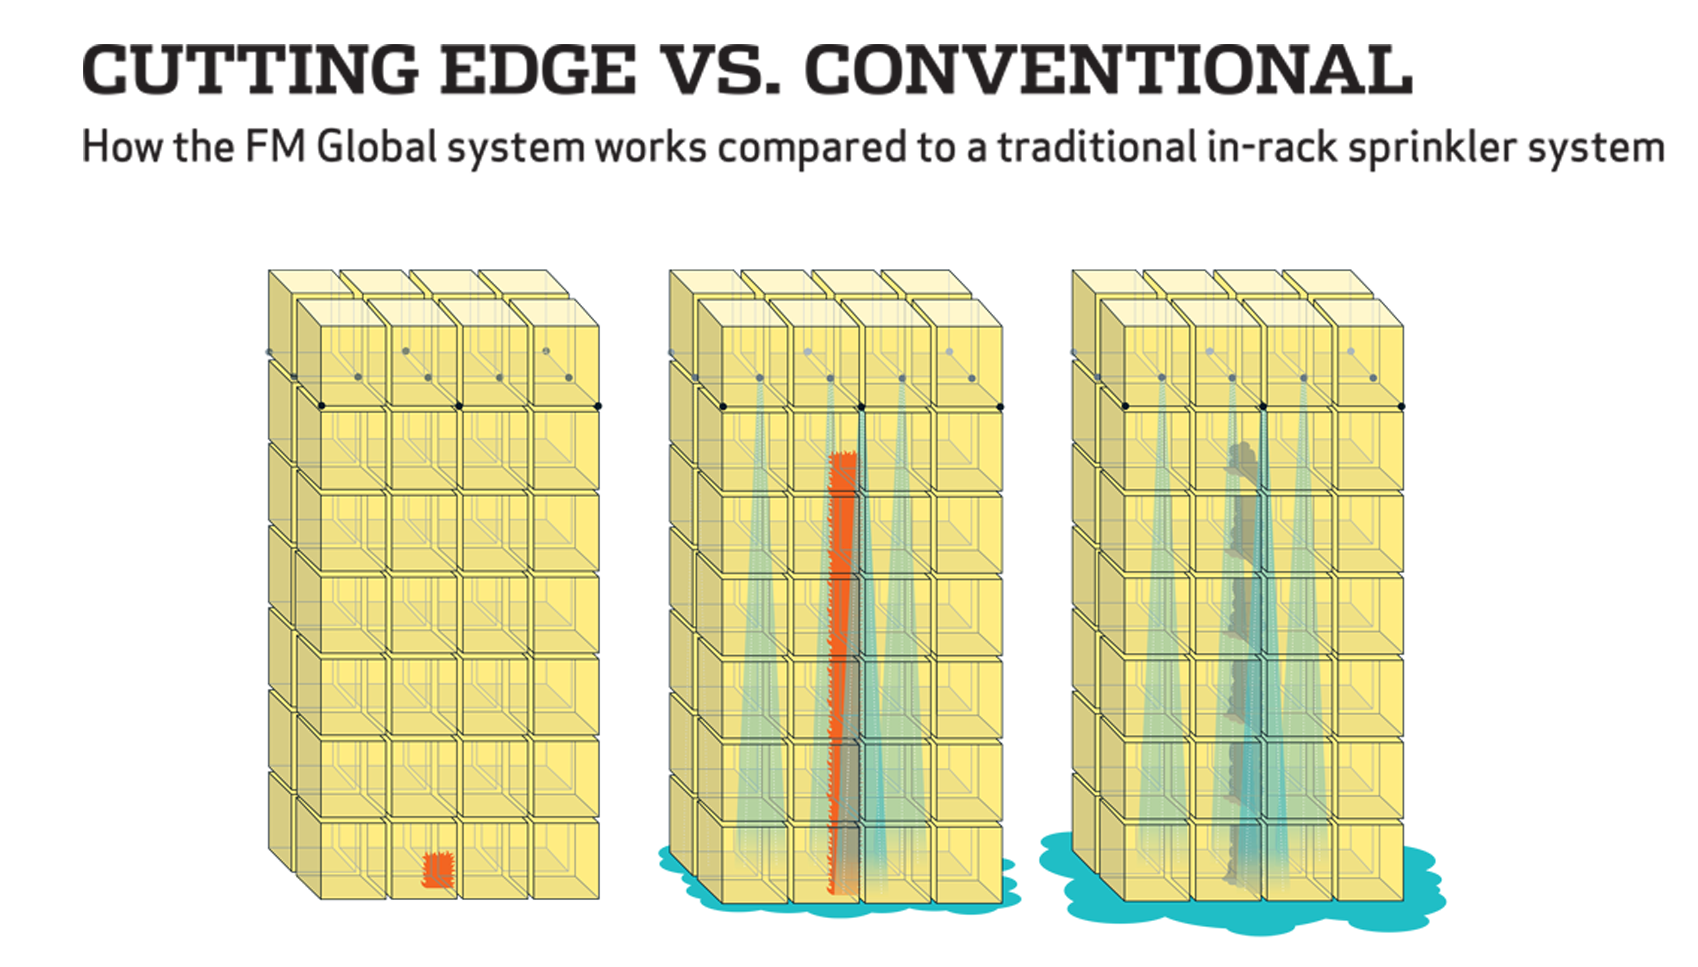 Illustration showing the difference between traditional in-rack sprinkler systems and the FM Global system